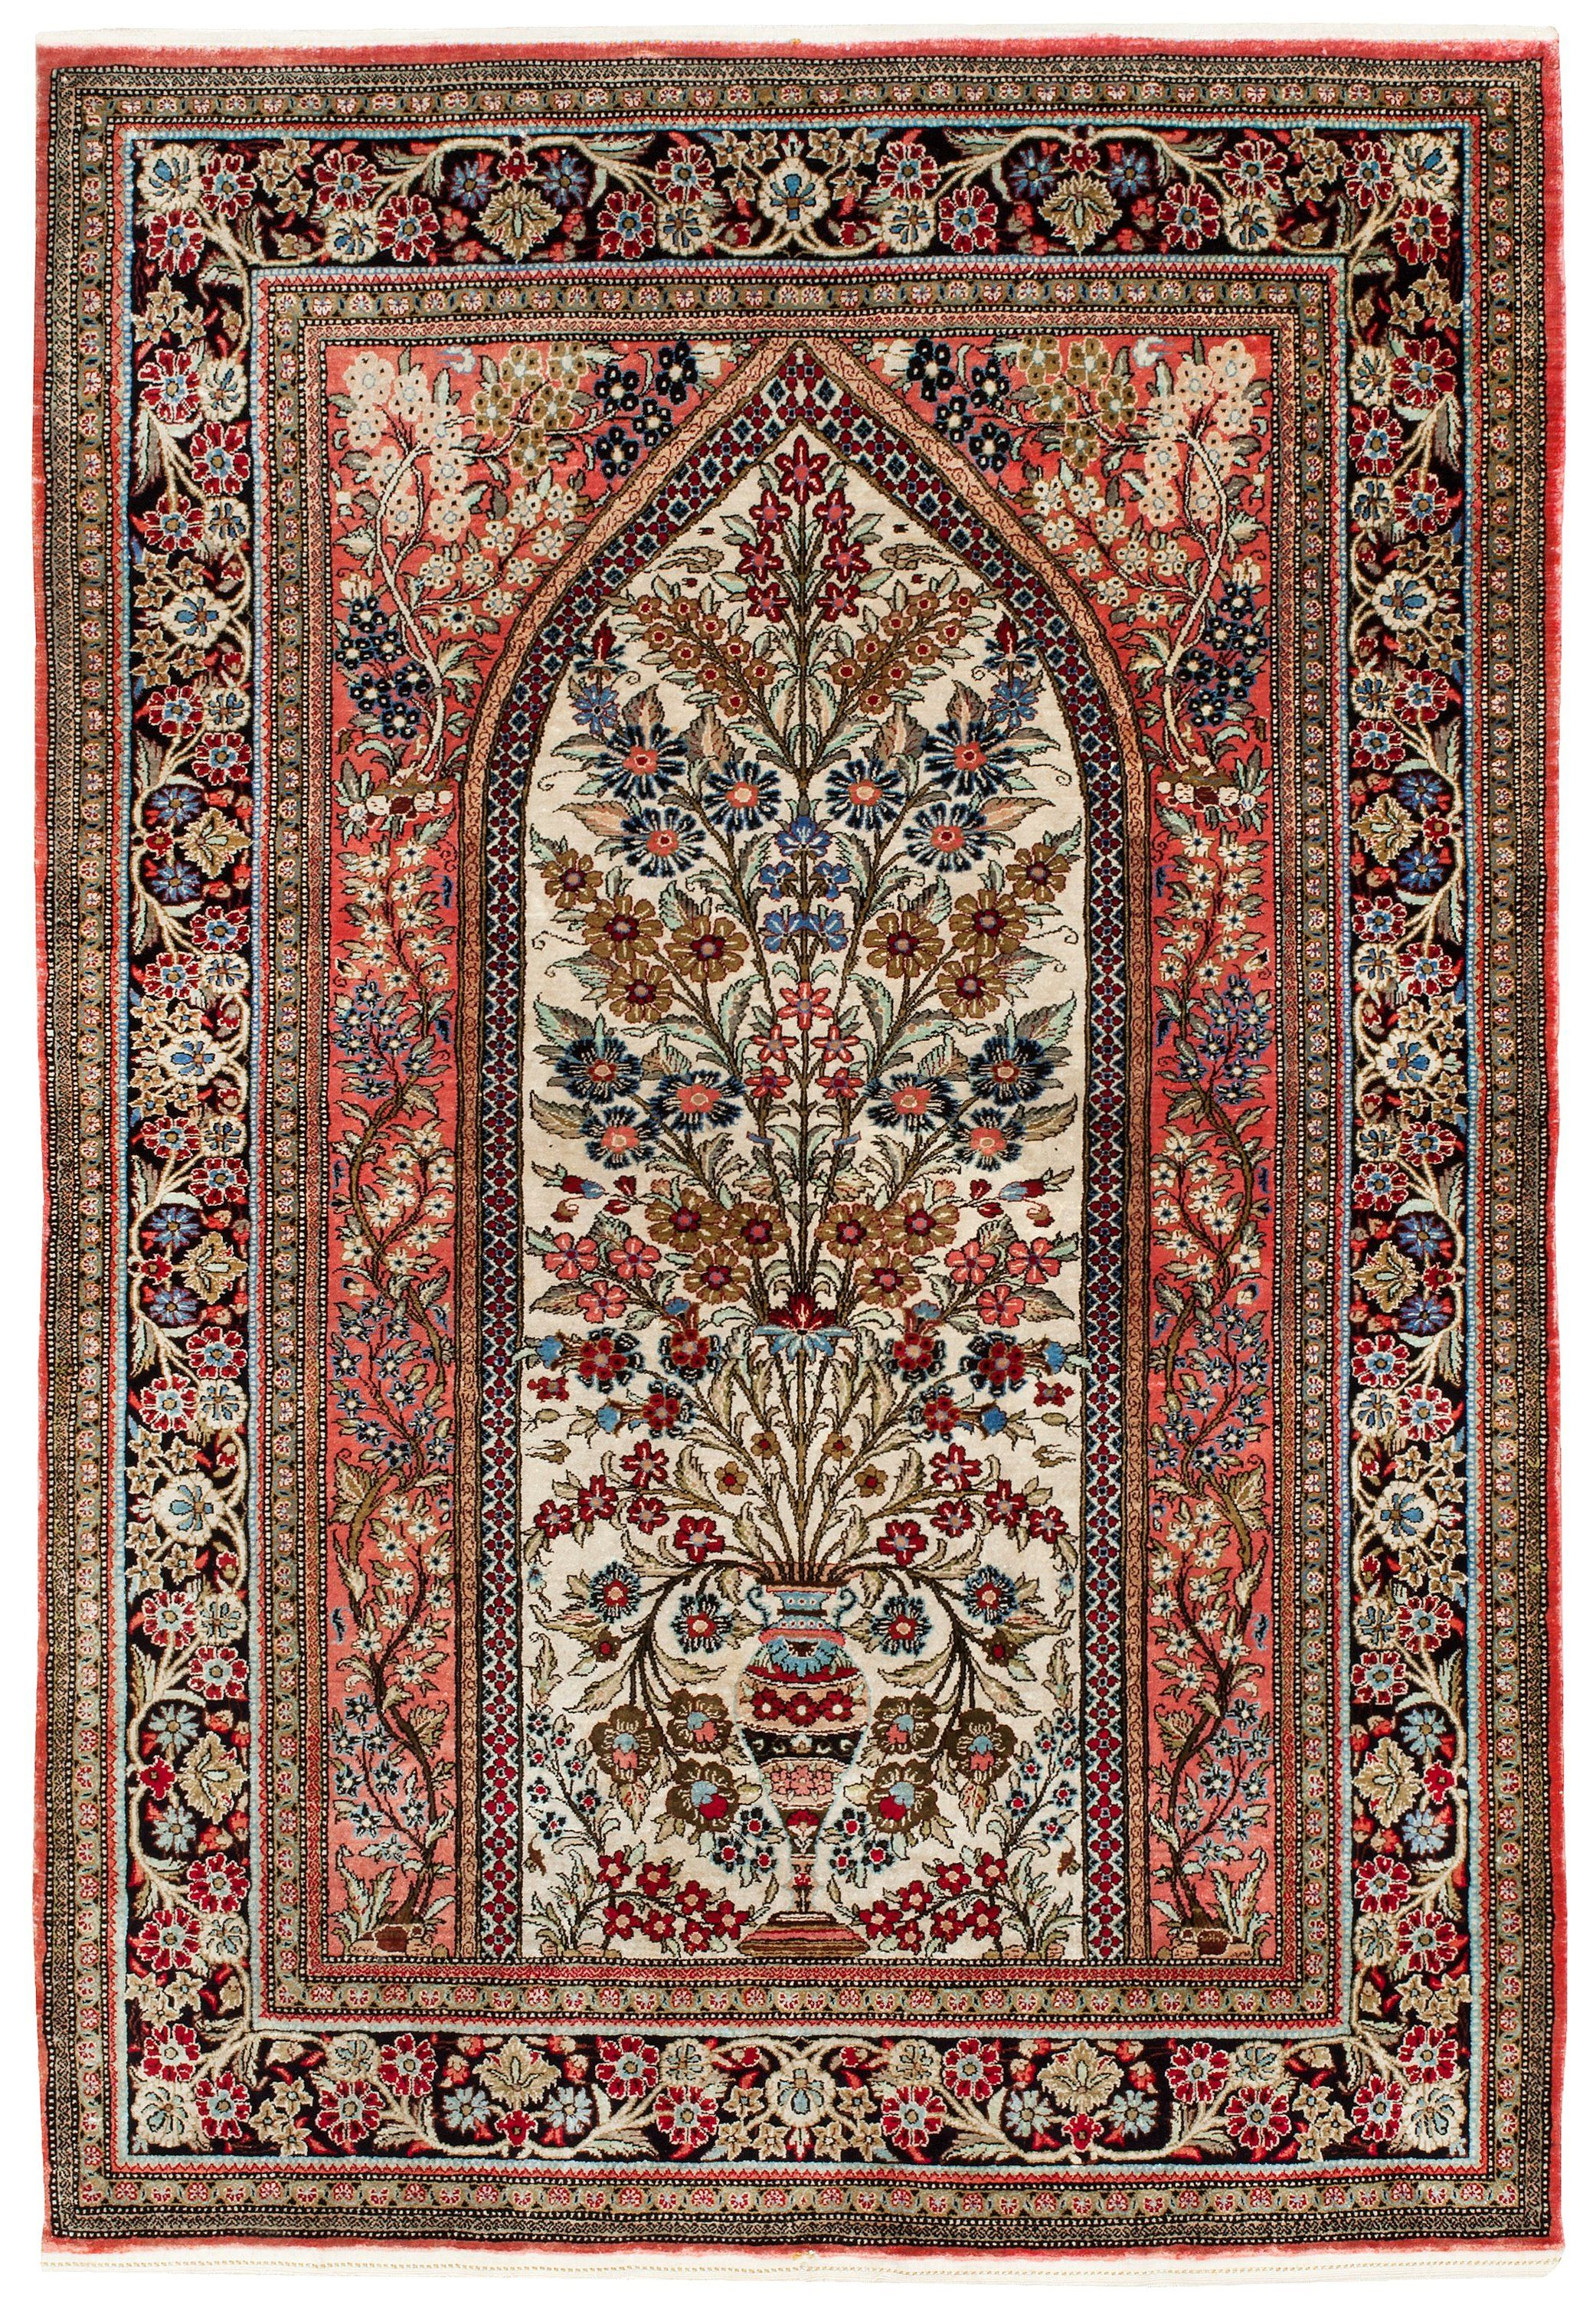 Persian Qum Silk Rug Tree Of Life Design Product Not Available Inspiration Only Persian Carpet Antique Persian Carpet Rugs